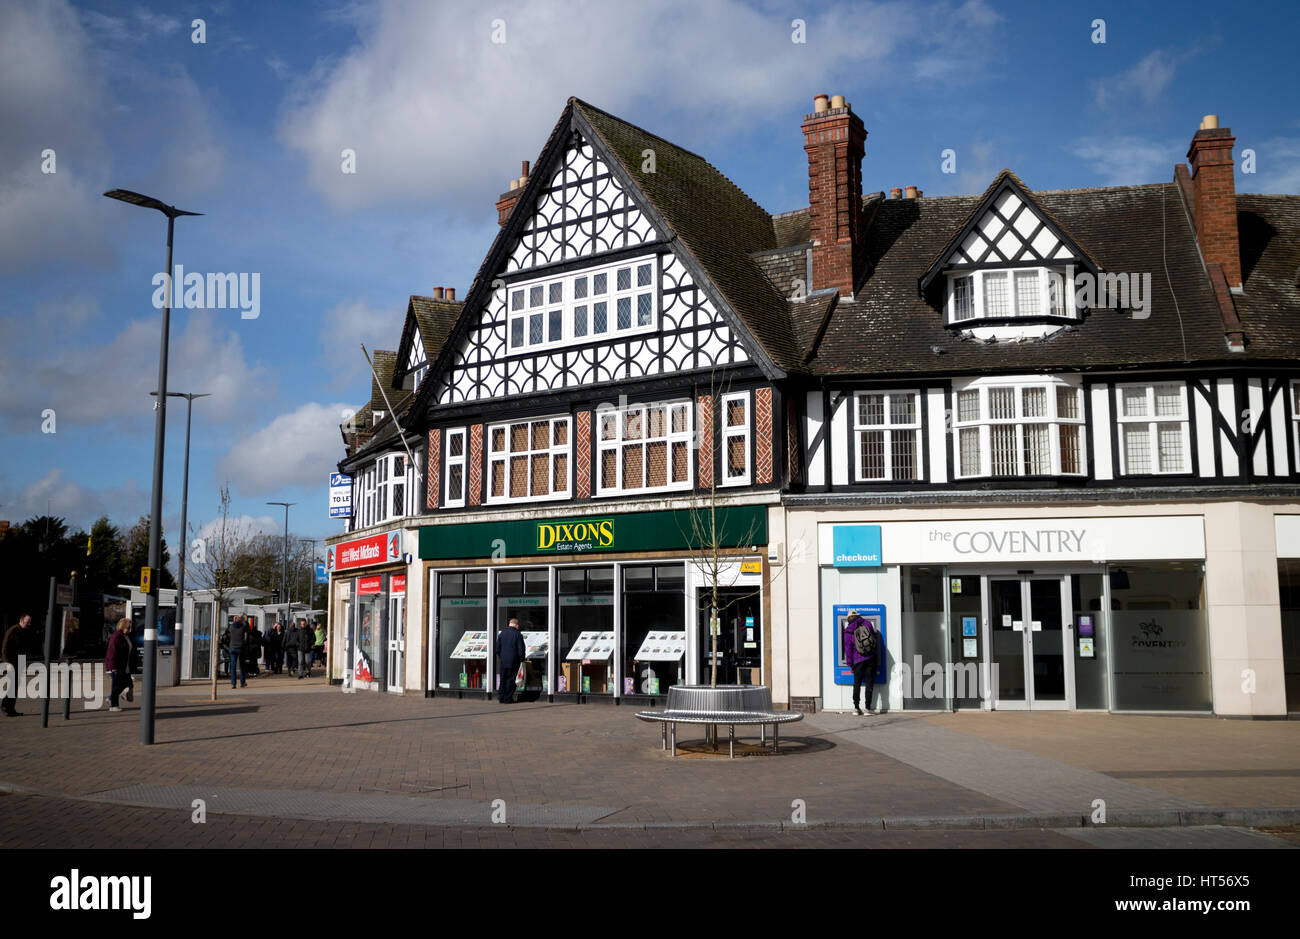 Solihull town centre, West Midlands, England, UK - Stock Image